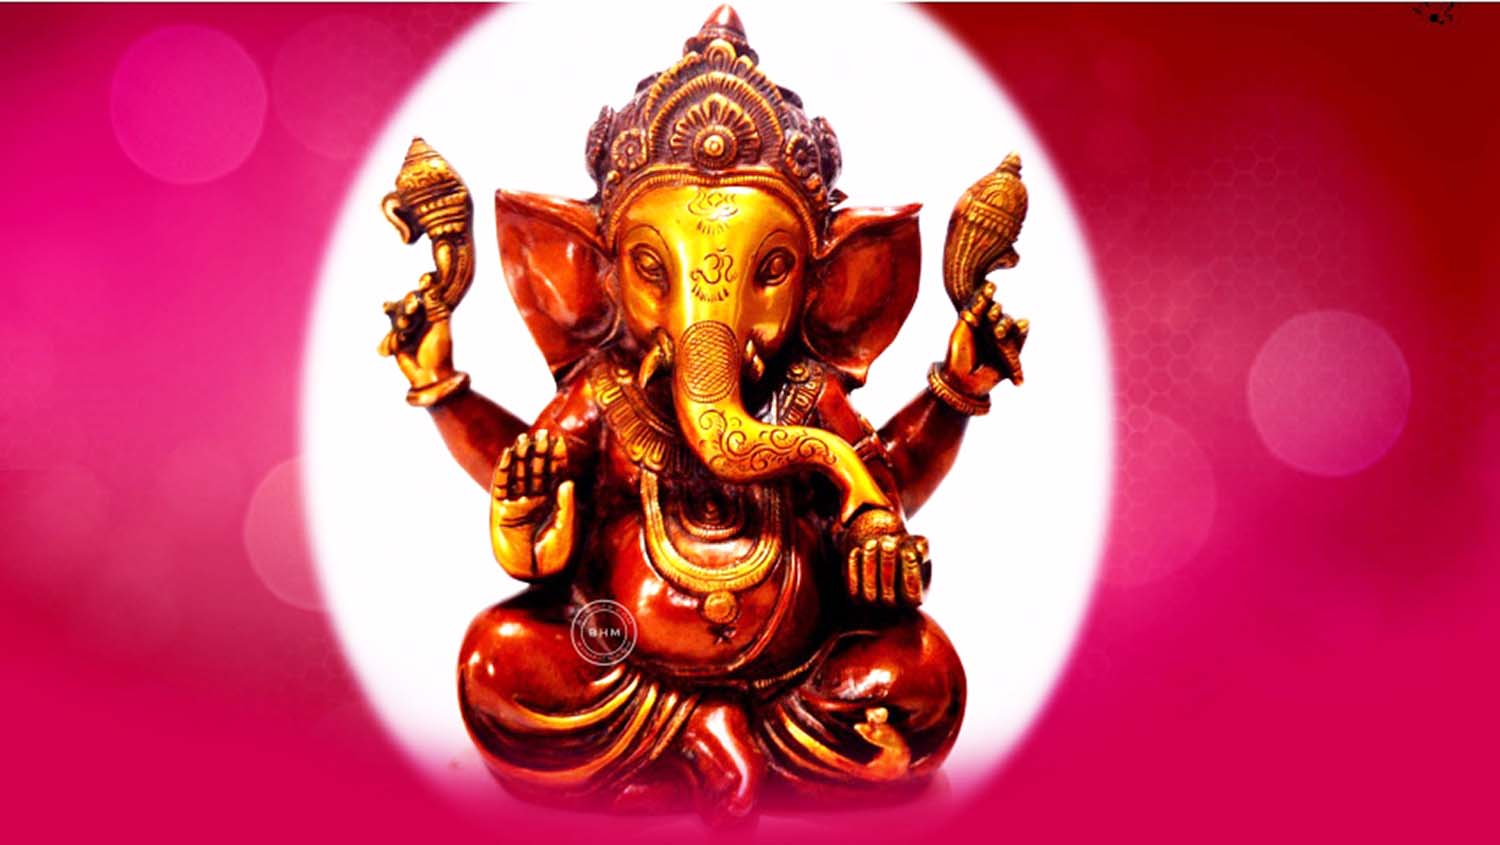 Ganpati wallpaper in pink background